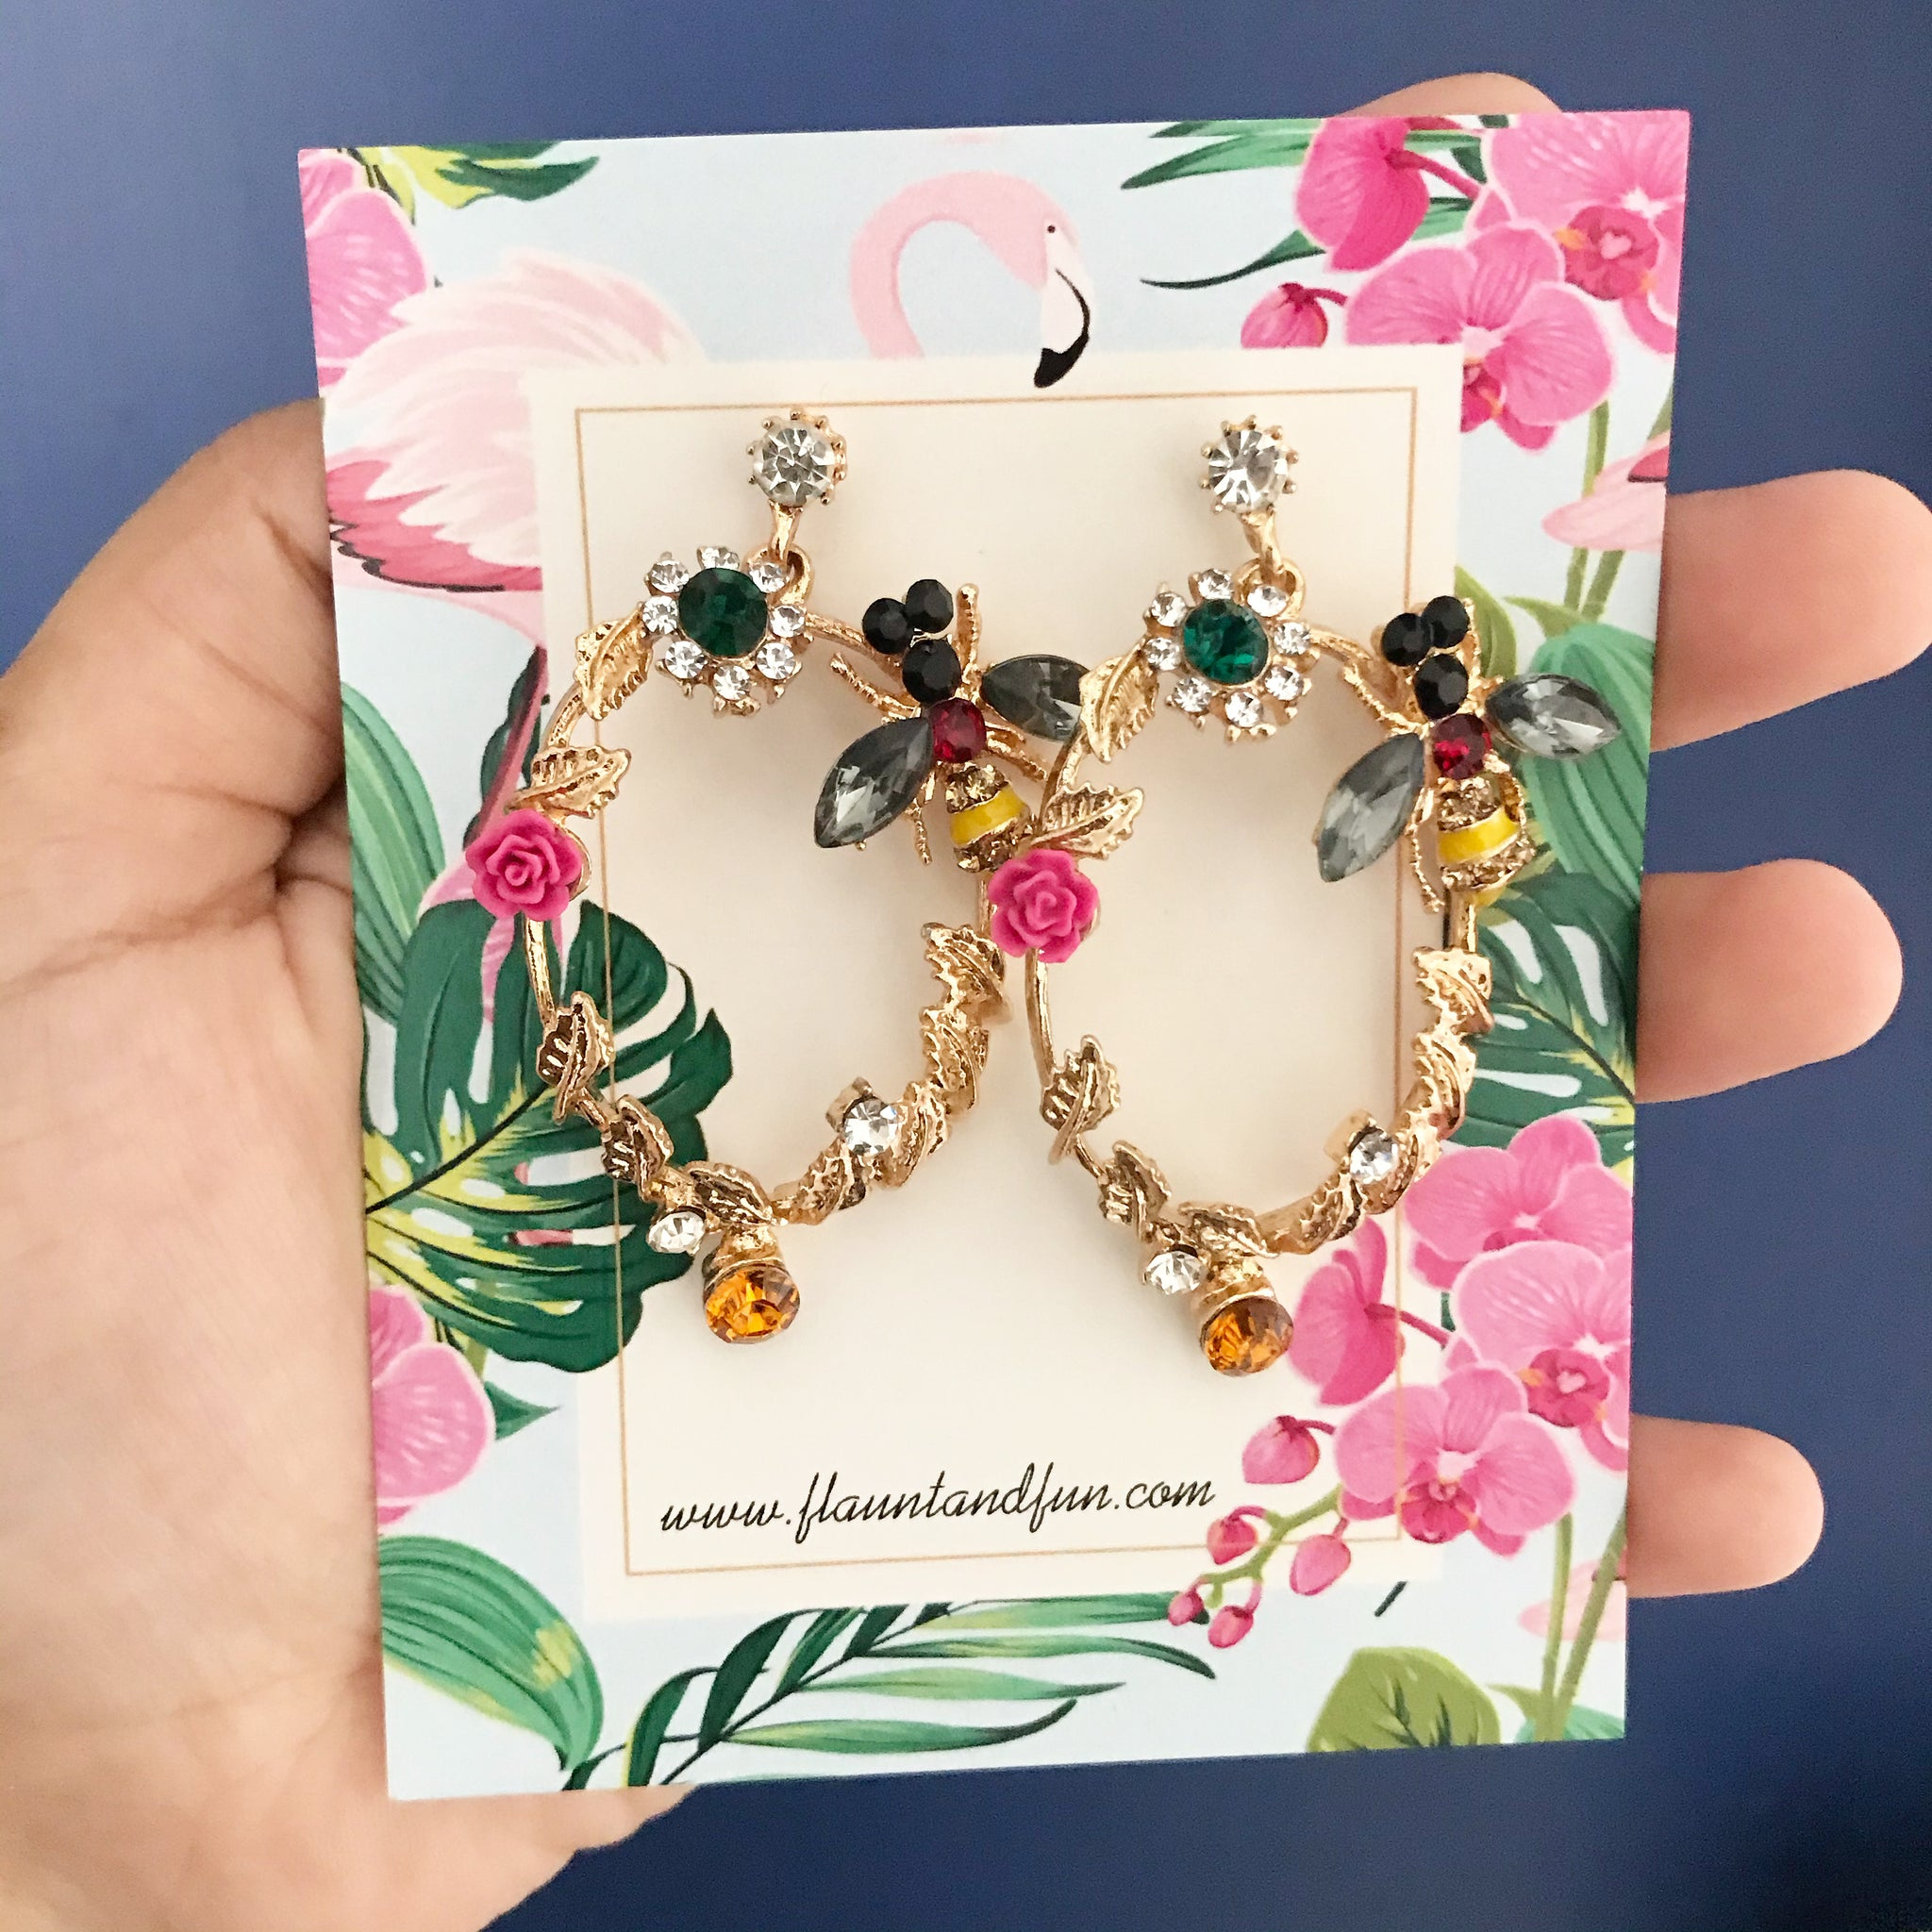 BEE VINTAGE EARRINGS 🐝